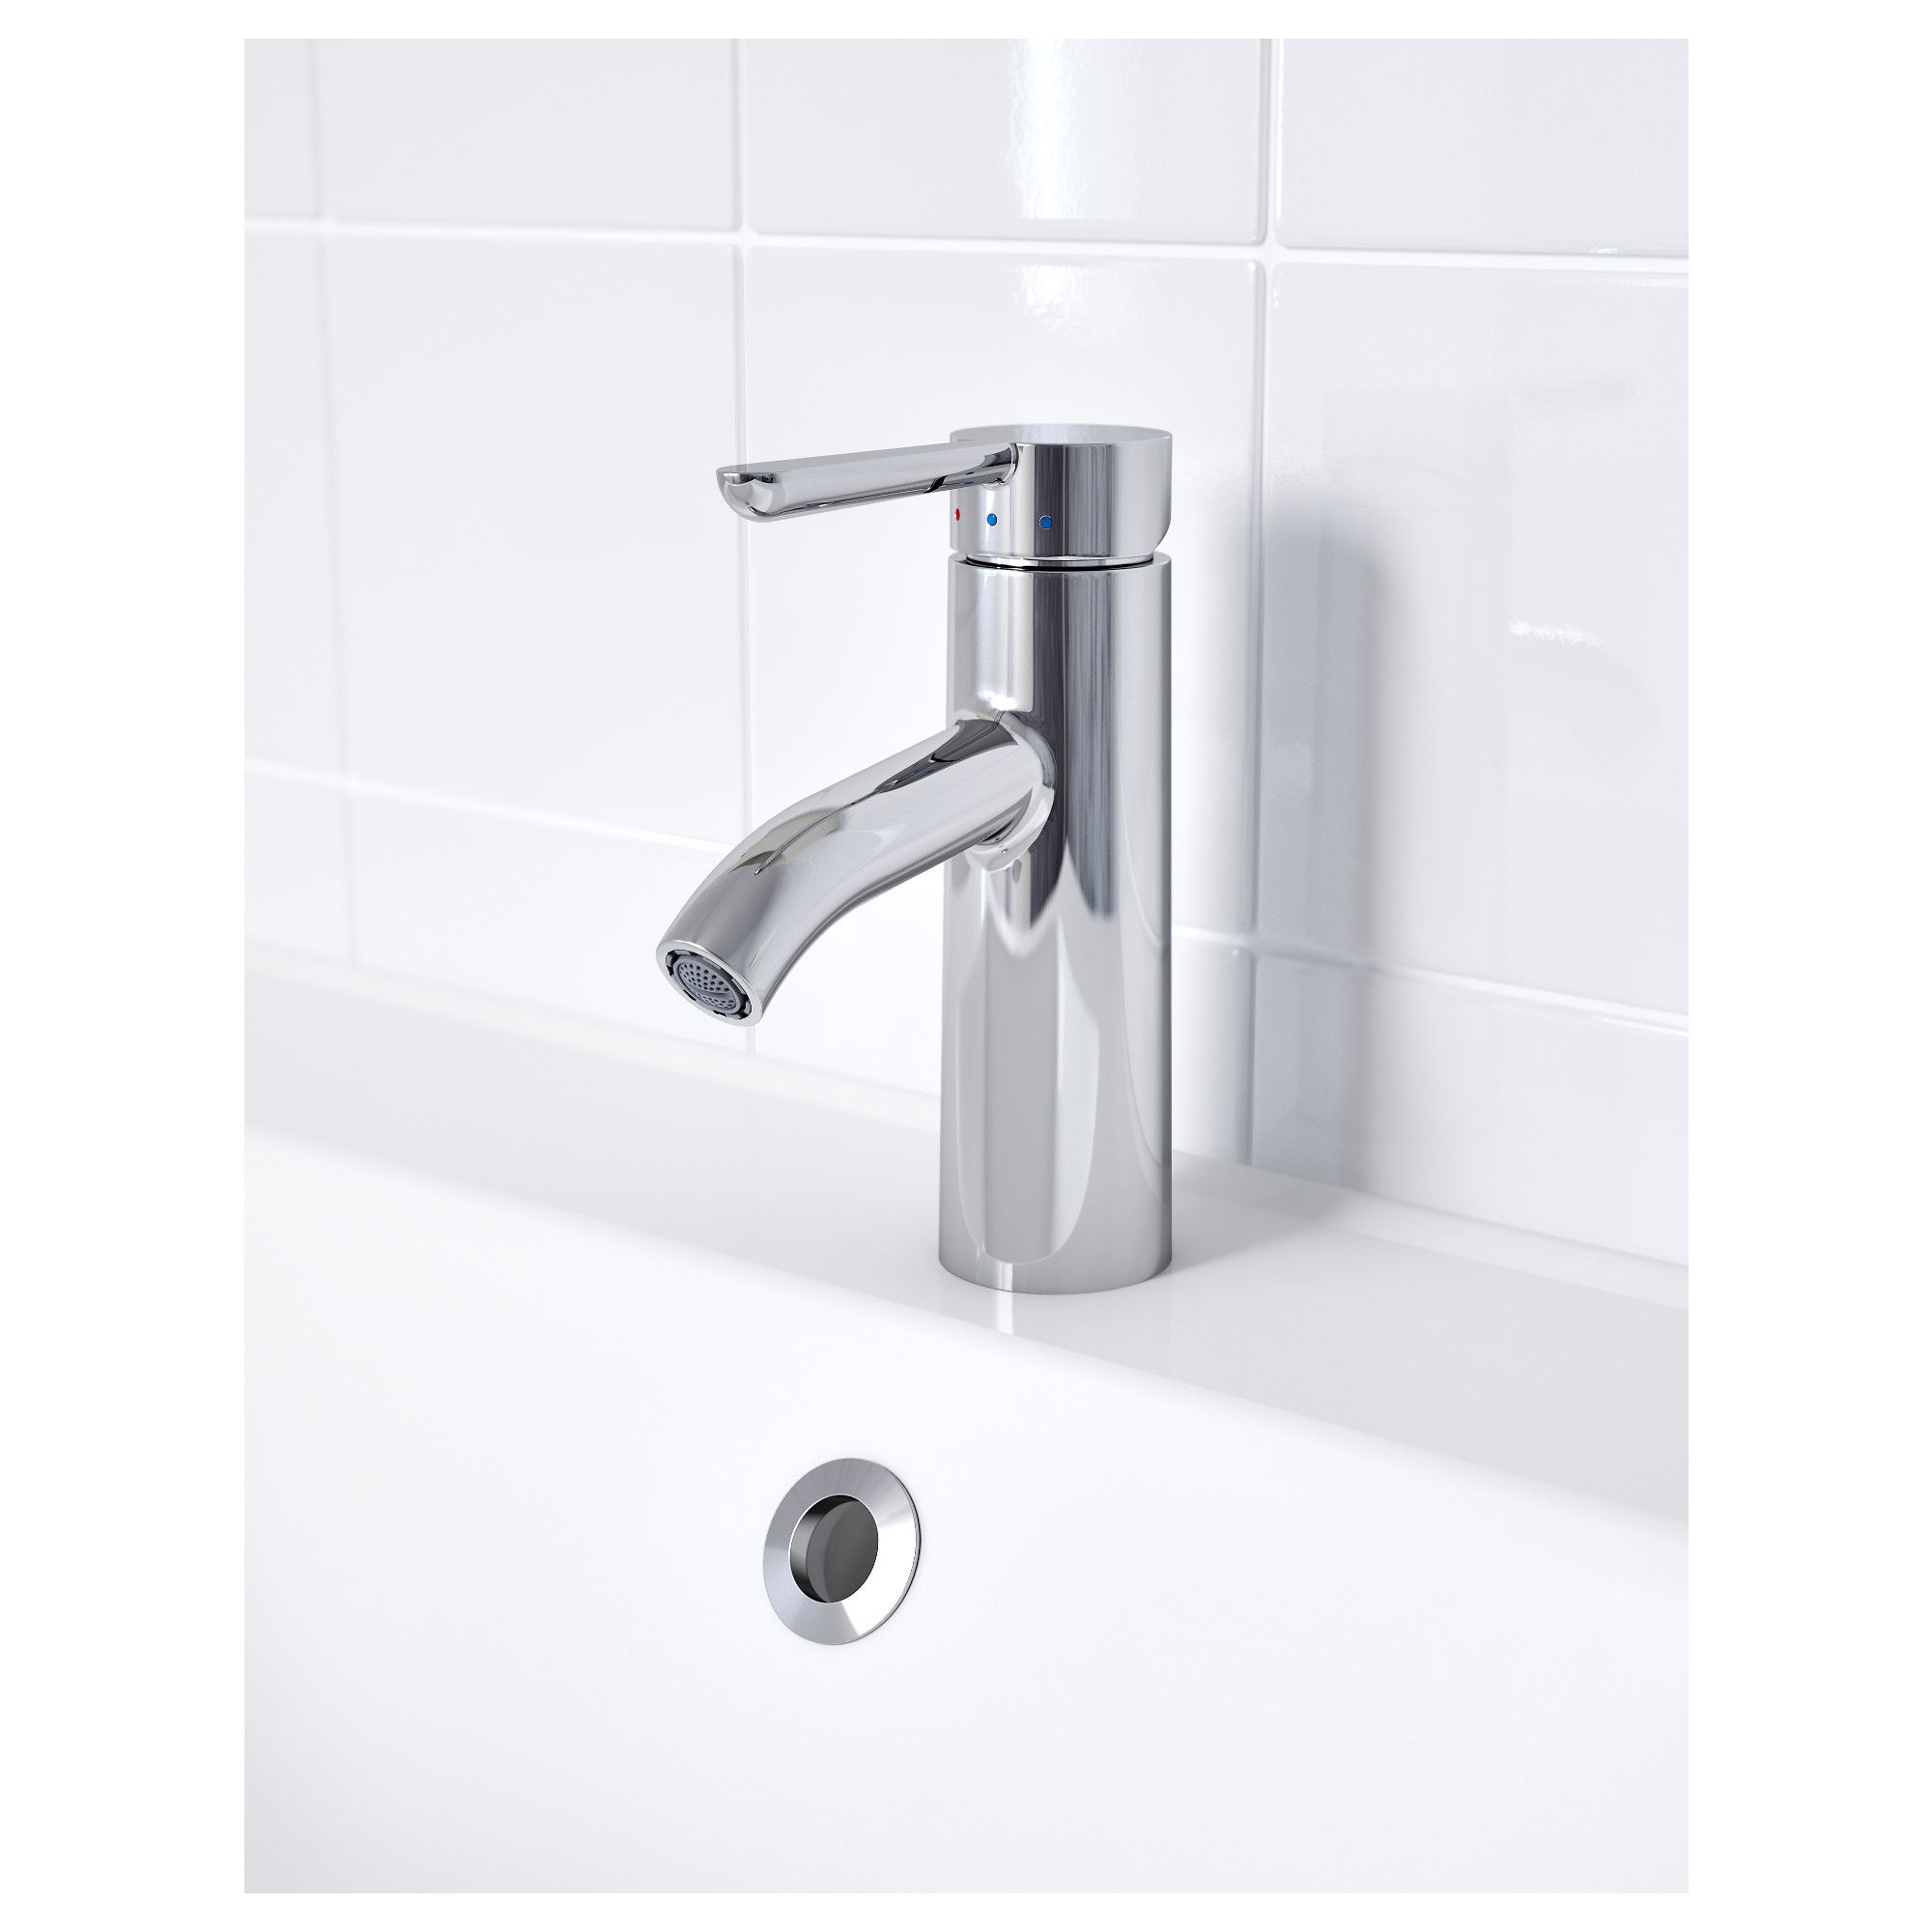 IKEA - DALSKÄR Bathroom faucet chrome plated | Products | Pinterest ...